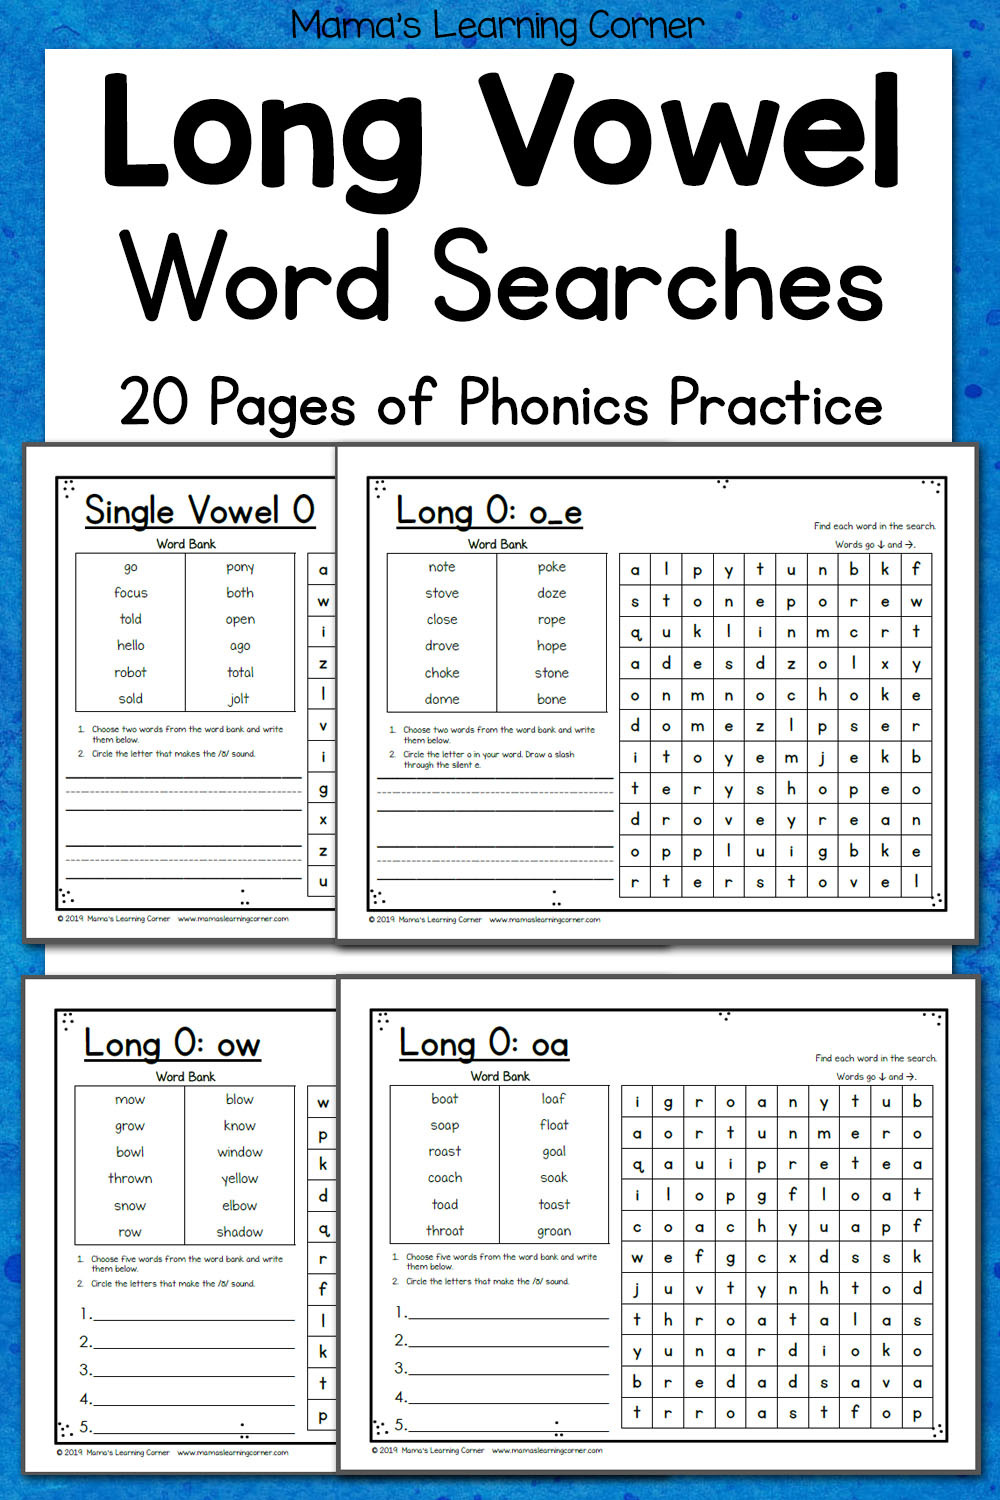 Schwa sound Worksheets Grade 2 Long Vowel Word Search Puzzles Mamas Learning Corner